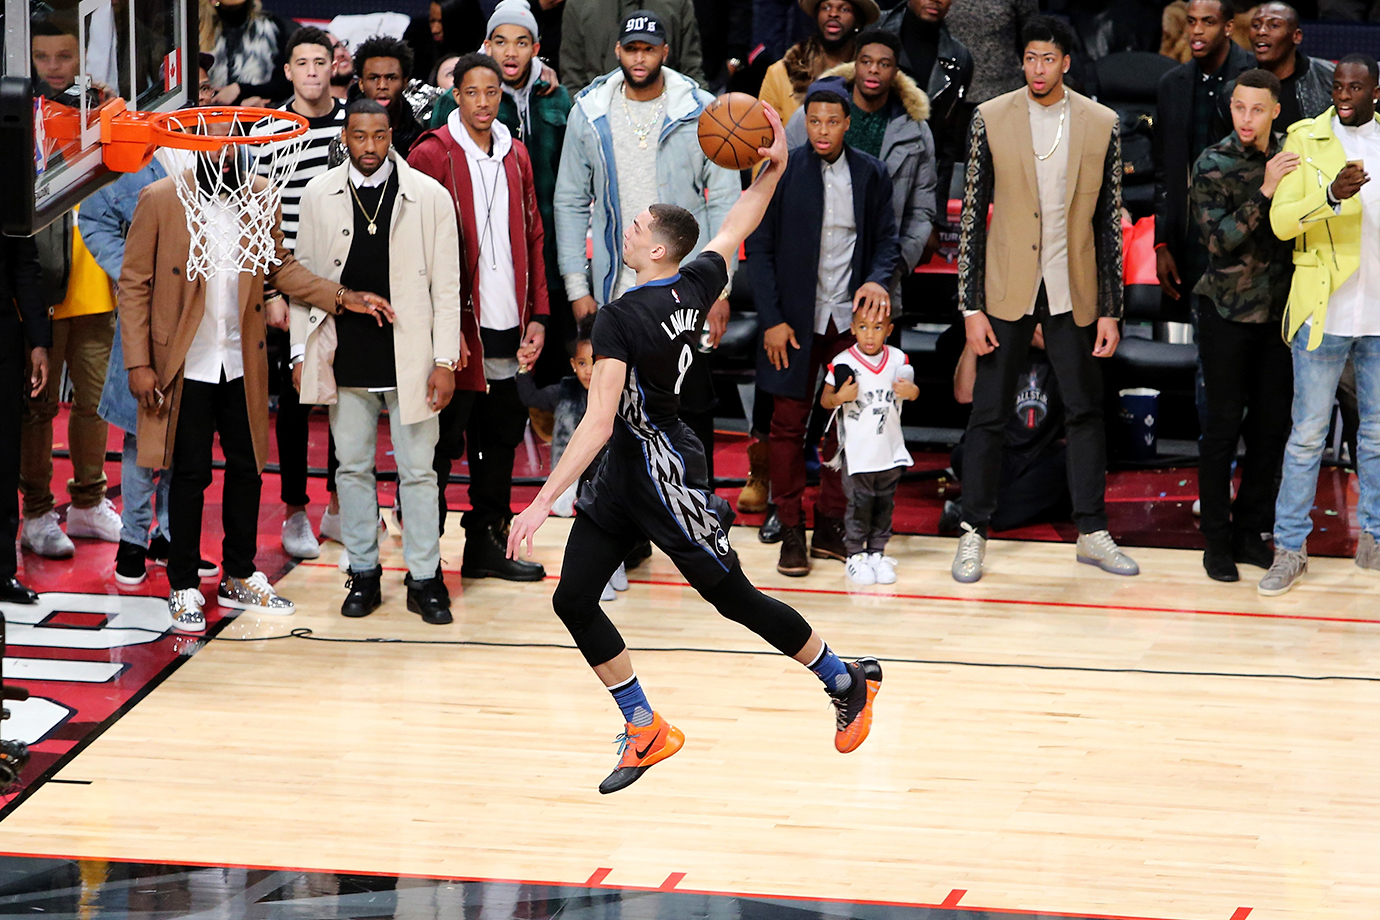 Zach LaVine scored a perfect 50 on his first dunk and needed two dunk-offs to outlast Aaron Gordon for a classic victory.